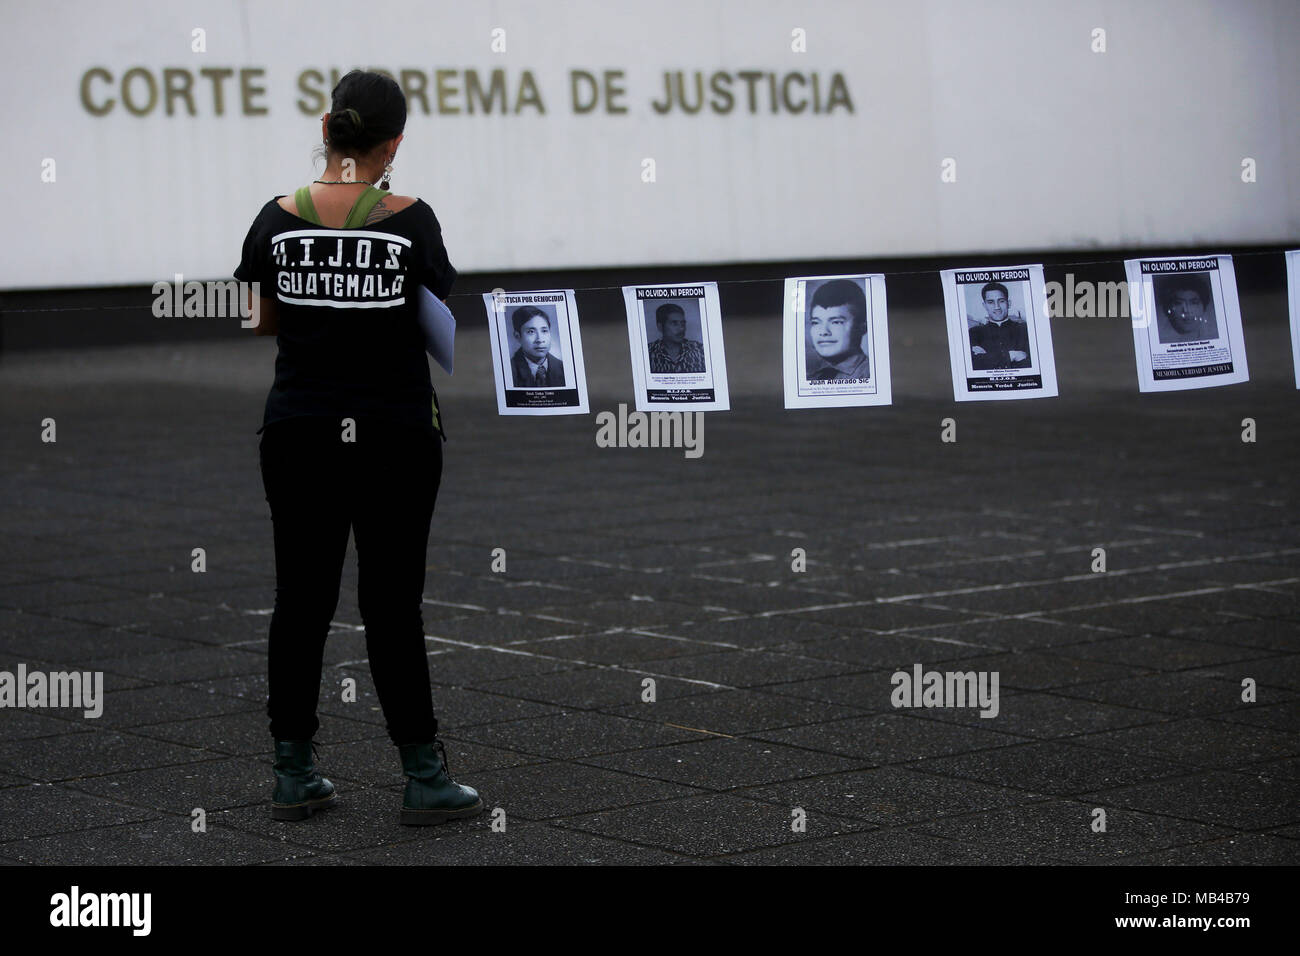 A view of portraits of victims of the dictatorship at an altar in Guatemala City, Guatemala, 06 April 2018. Civil organizations and relatives of the victims of the internal armed conflict during the government of Jose Efrain Rios Montt payed tribute to the victims of the ixil genocide at the Palace of Justice. The court in charge of the case decided to close the criminal process against the former dictator, who died past Sunday at the age of 91, and to give the families an economic compensarion of 67,567 dollars. EFE/Esteban Biba - Stock Image